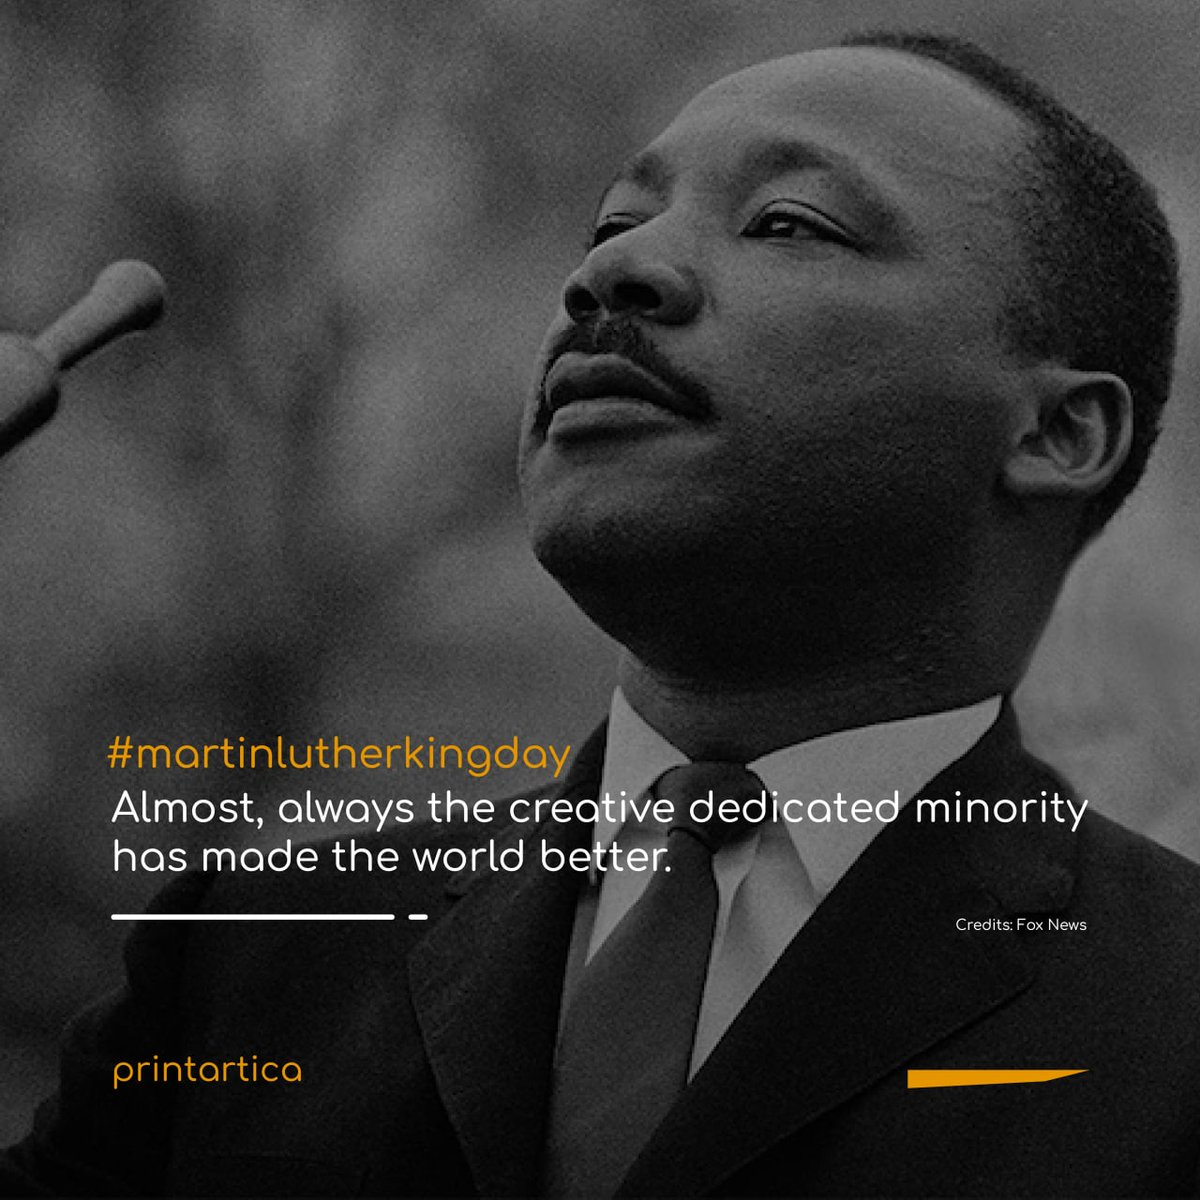 Let's gather whatever we have to keep giving rise to the world into a better place. #martinlutherkingday  Credits: Fox News  #printartica #printarticaauthors #artcommunity #artists #photography #illustrators #digitalartists #digitalartistsofindia #photographers https://t.co/s7NRZoS9md